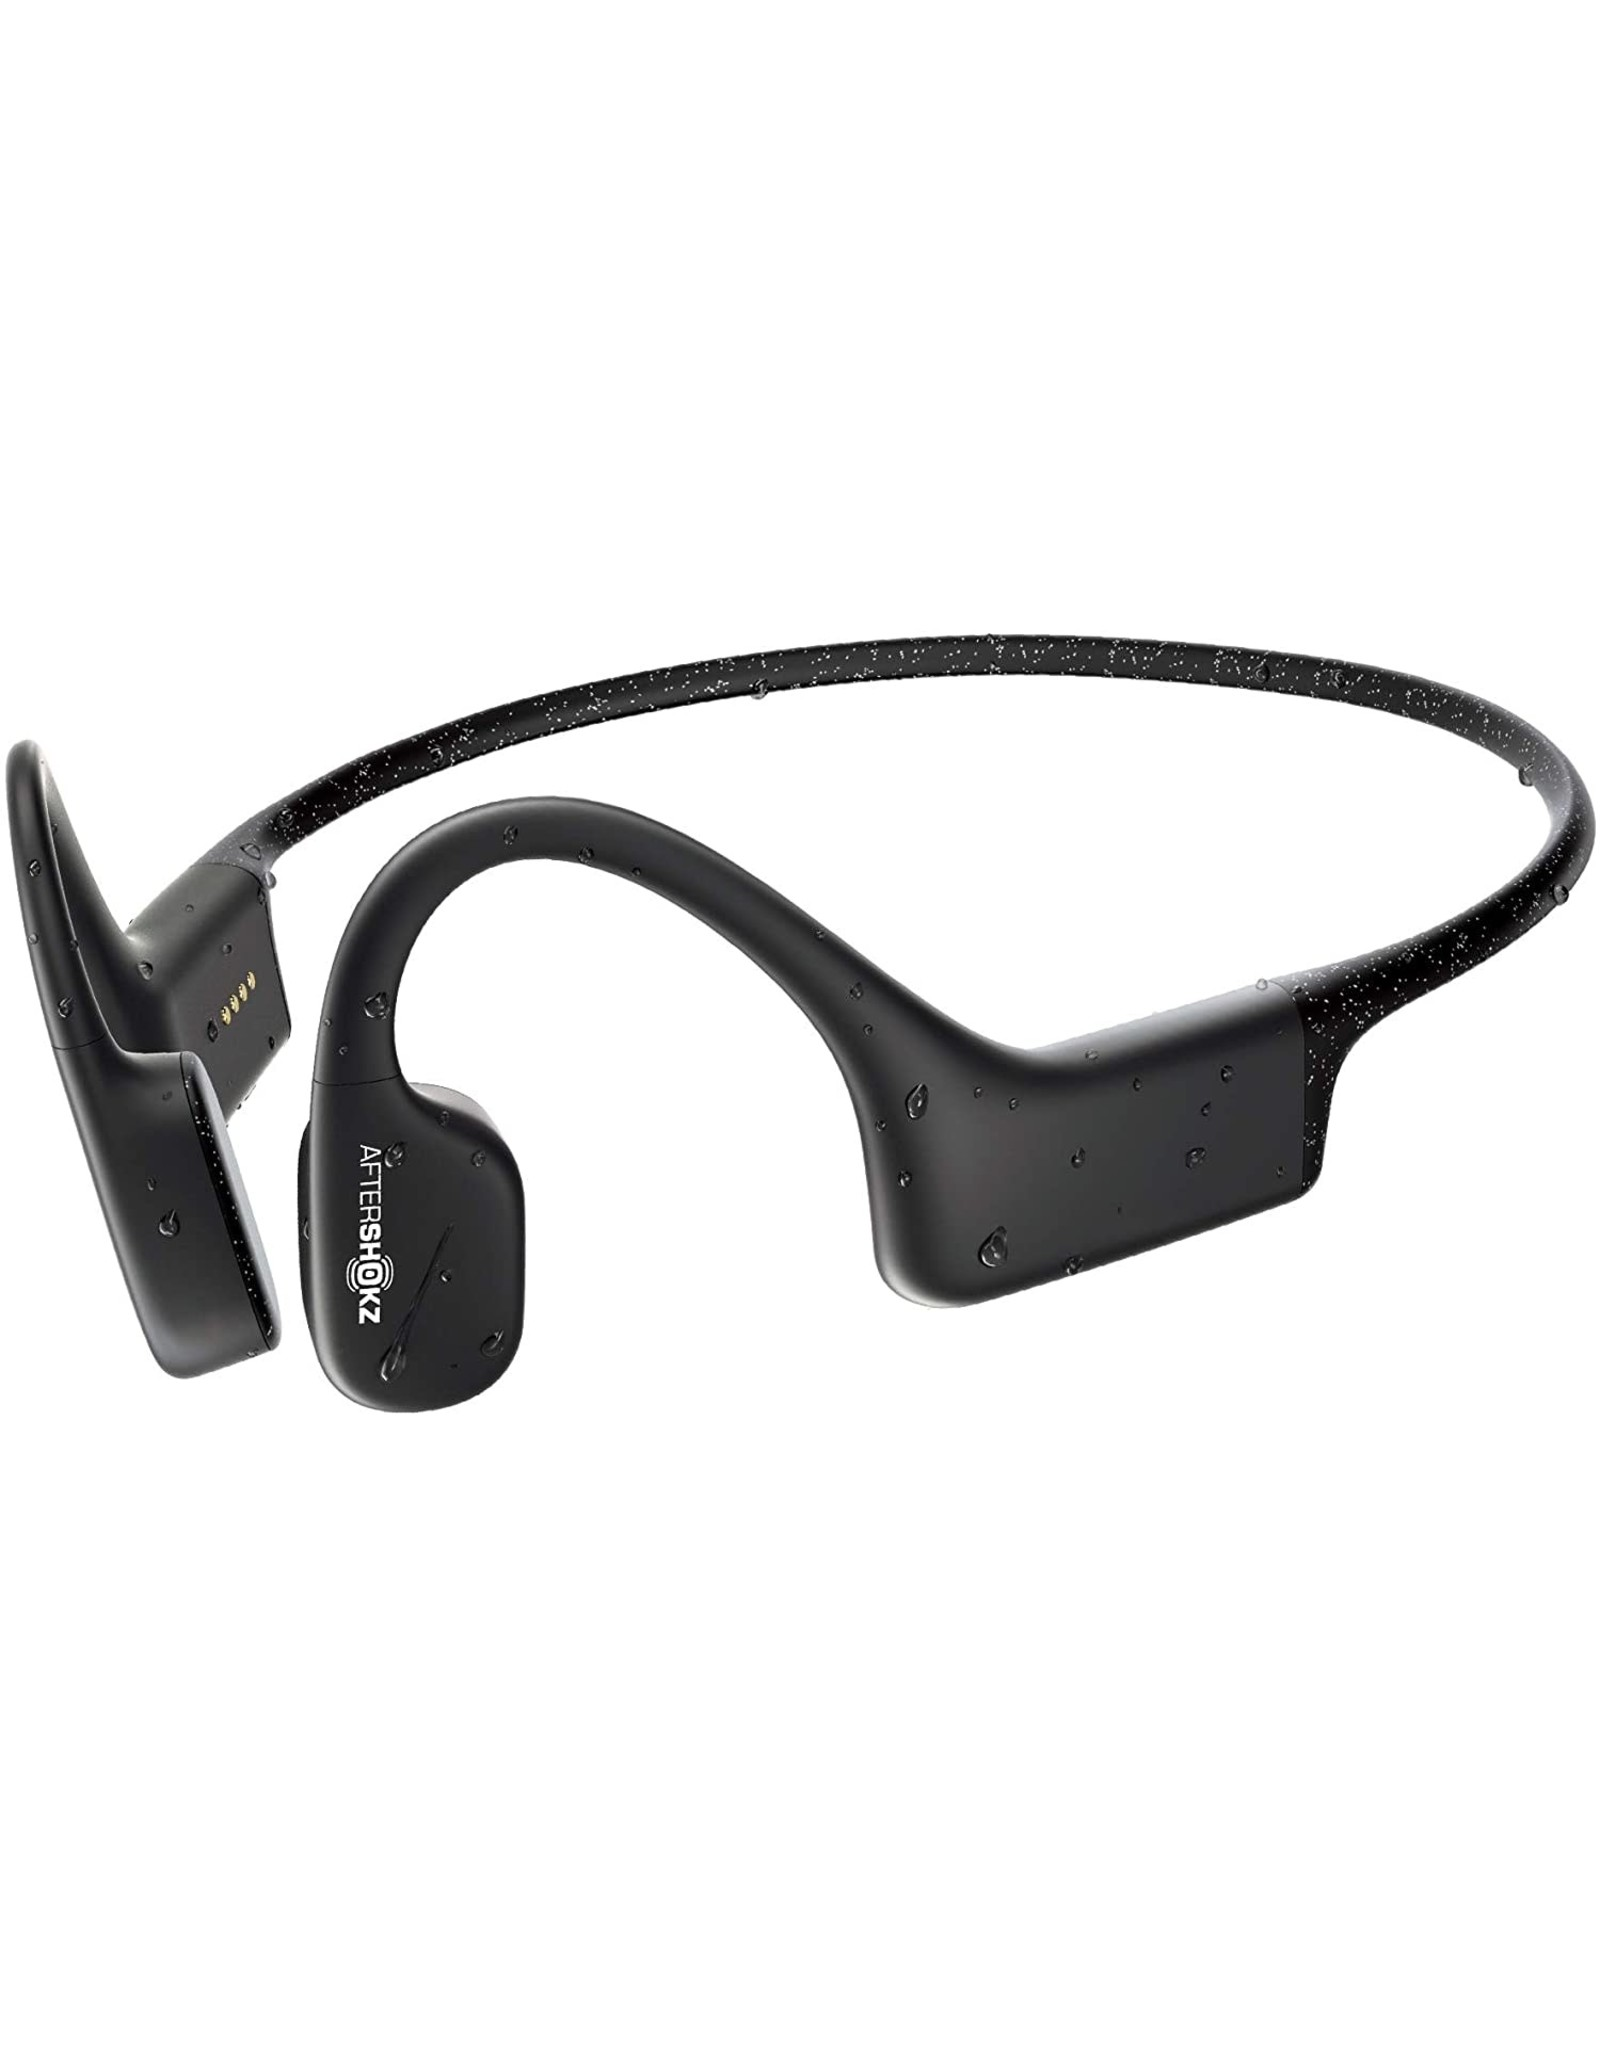 Aftershokz Aftershokz Xtrainerz Headphones Waterproof MP3 Black Diamond  SKU:49516